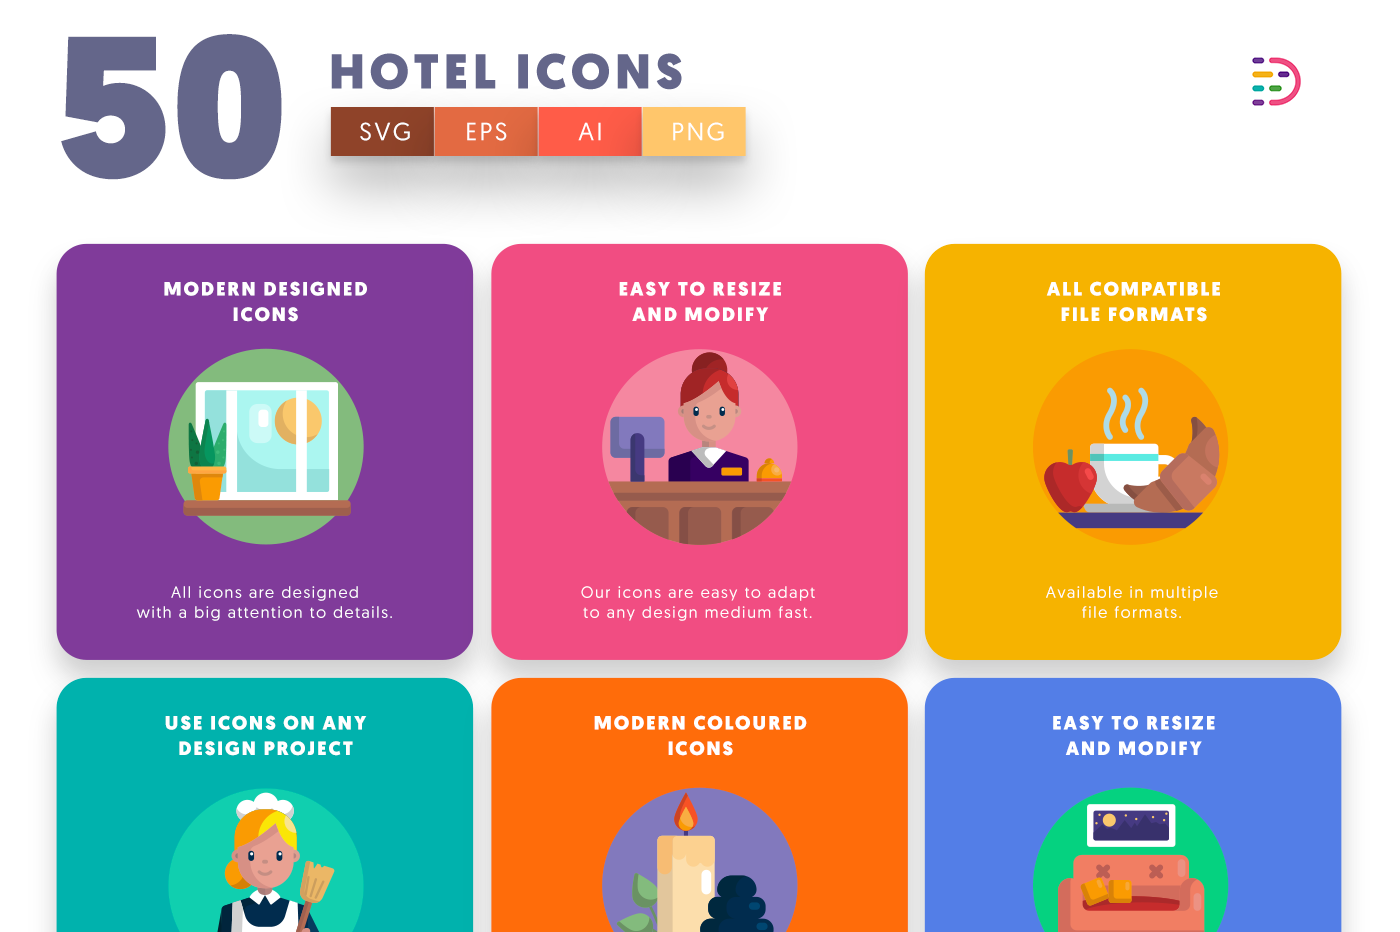 50 Hotel Icons with colored backgrounds